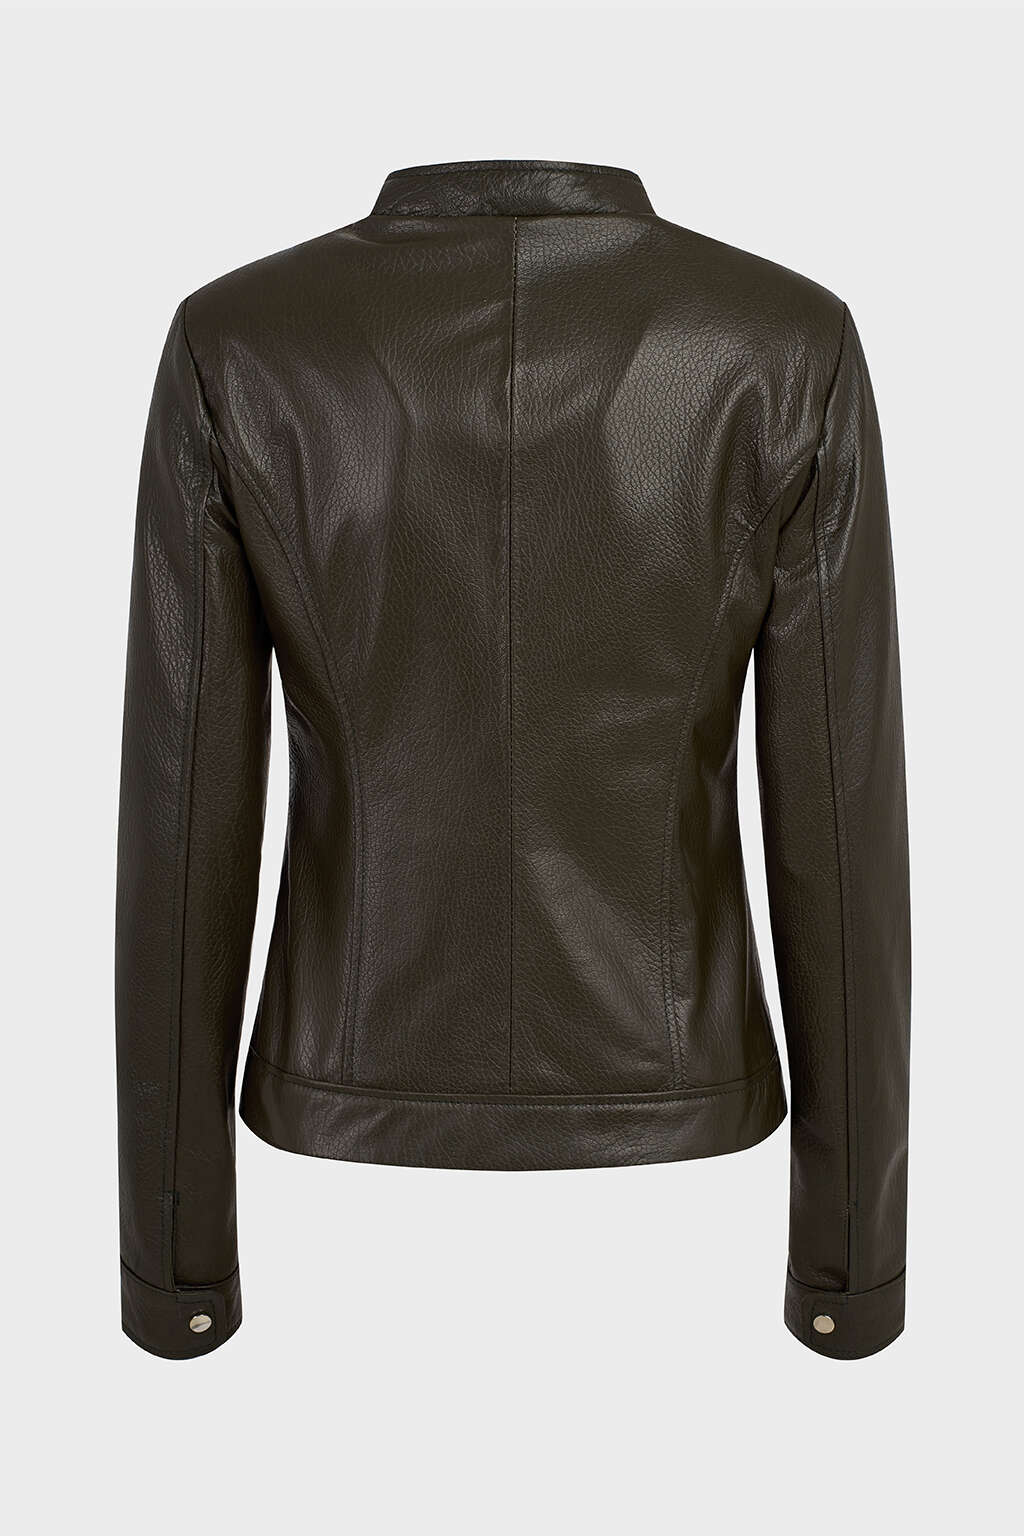 Back of Deep Olive Green Classic High-Collared Leather Jacket